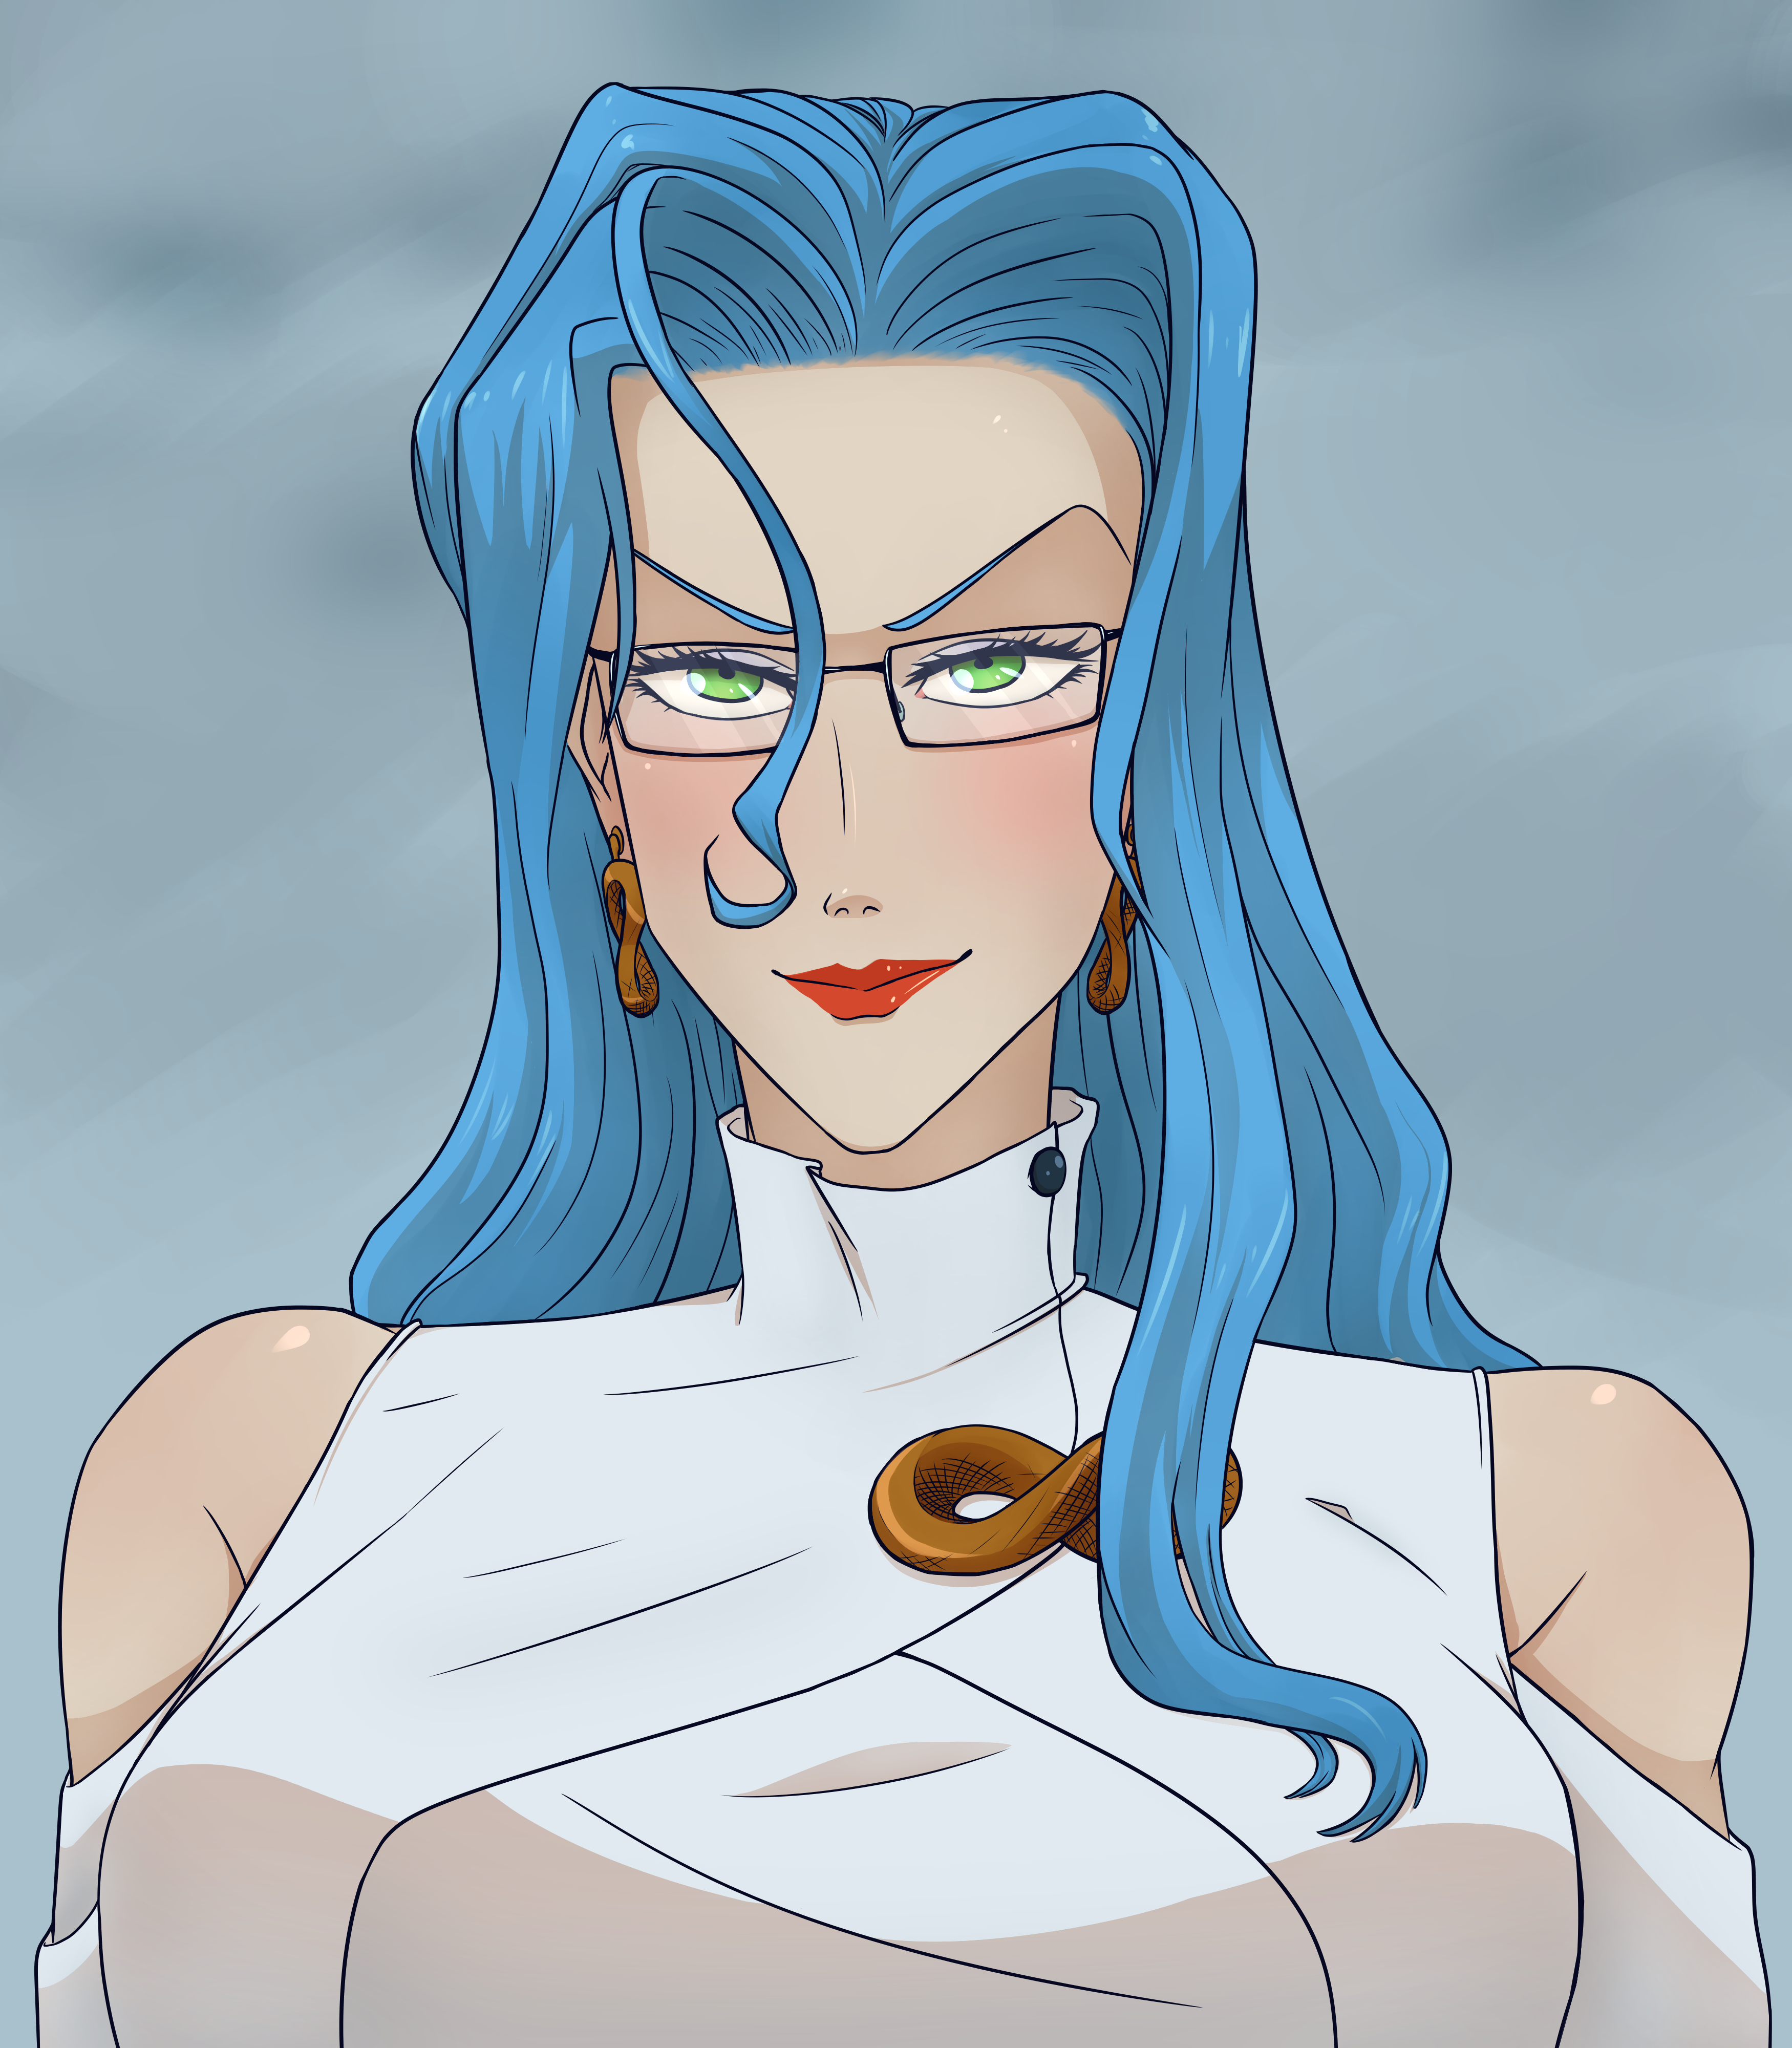 I Drew Psykos For My Profile Picture Her Hair Is Hard To Draw R Onepunchman One Punch Man Know Your Meme